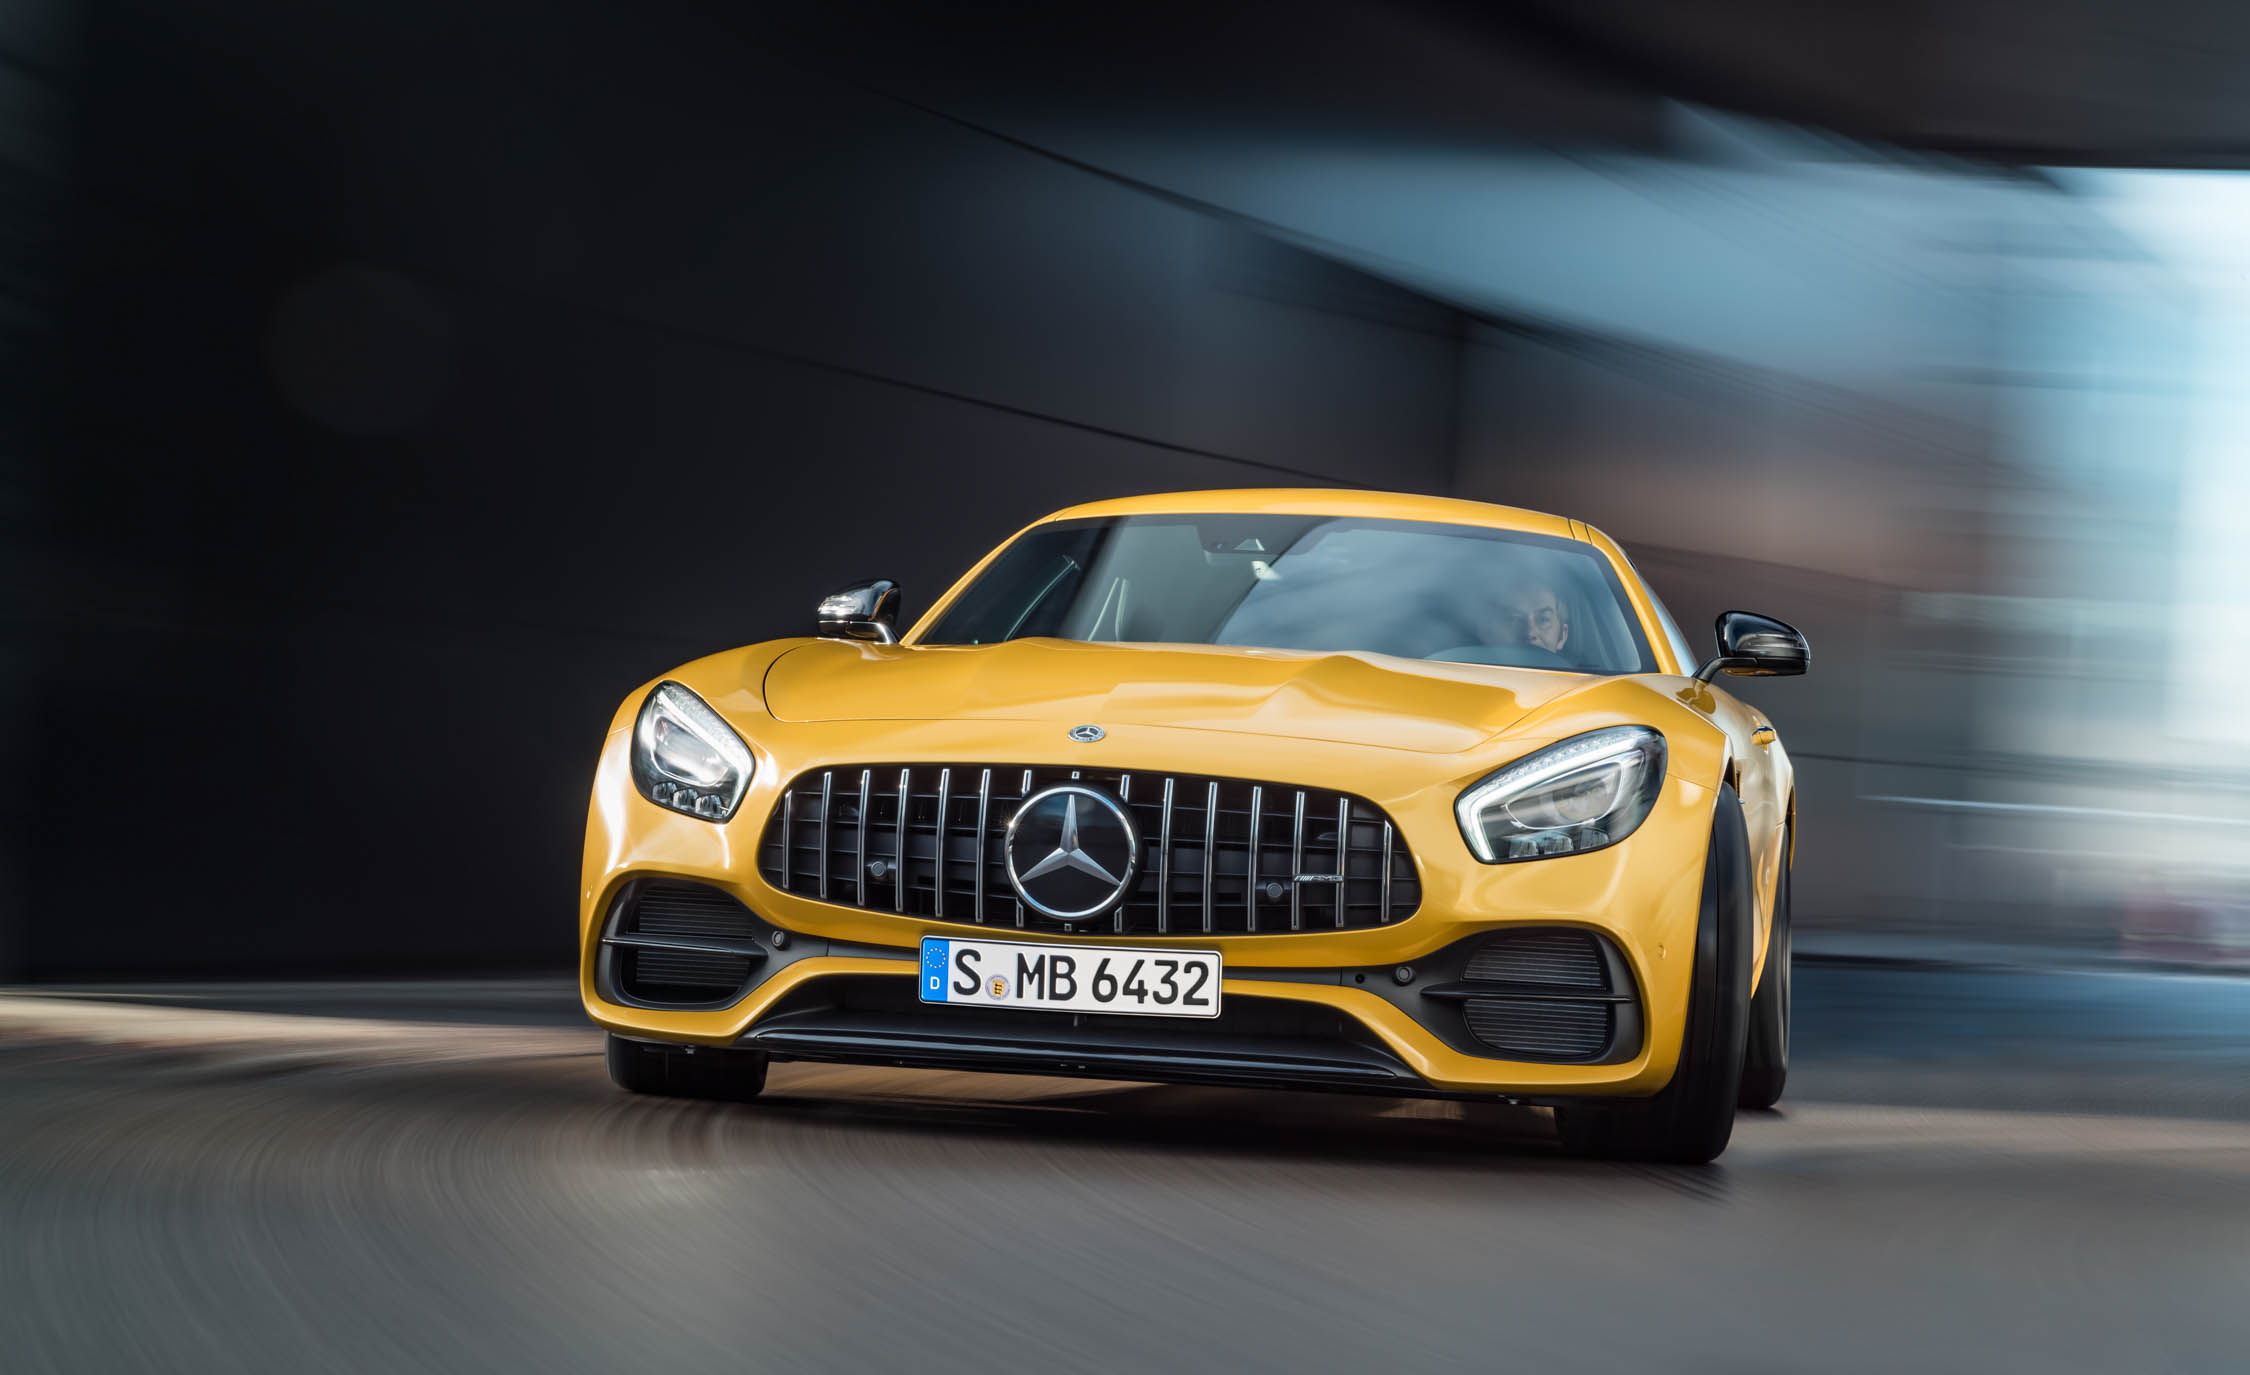 2018 Mercedes Amg Gt S Exterior Front (View 10 of 23)